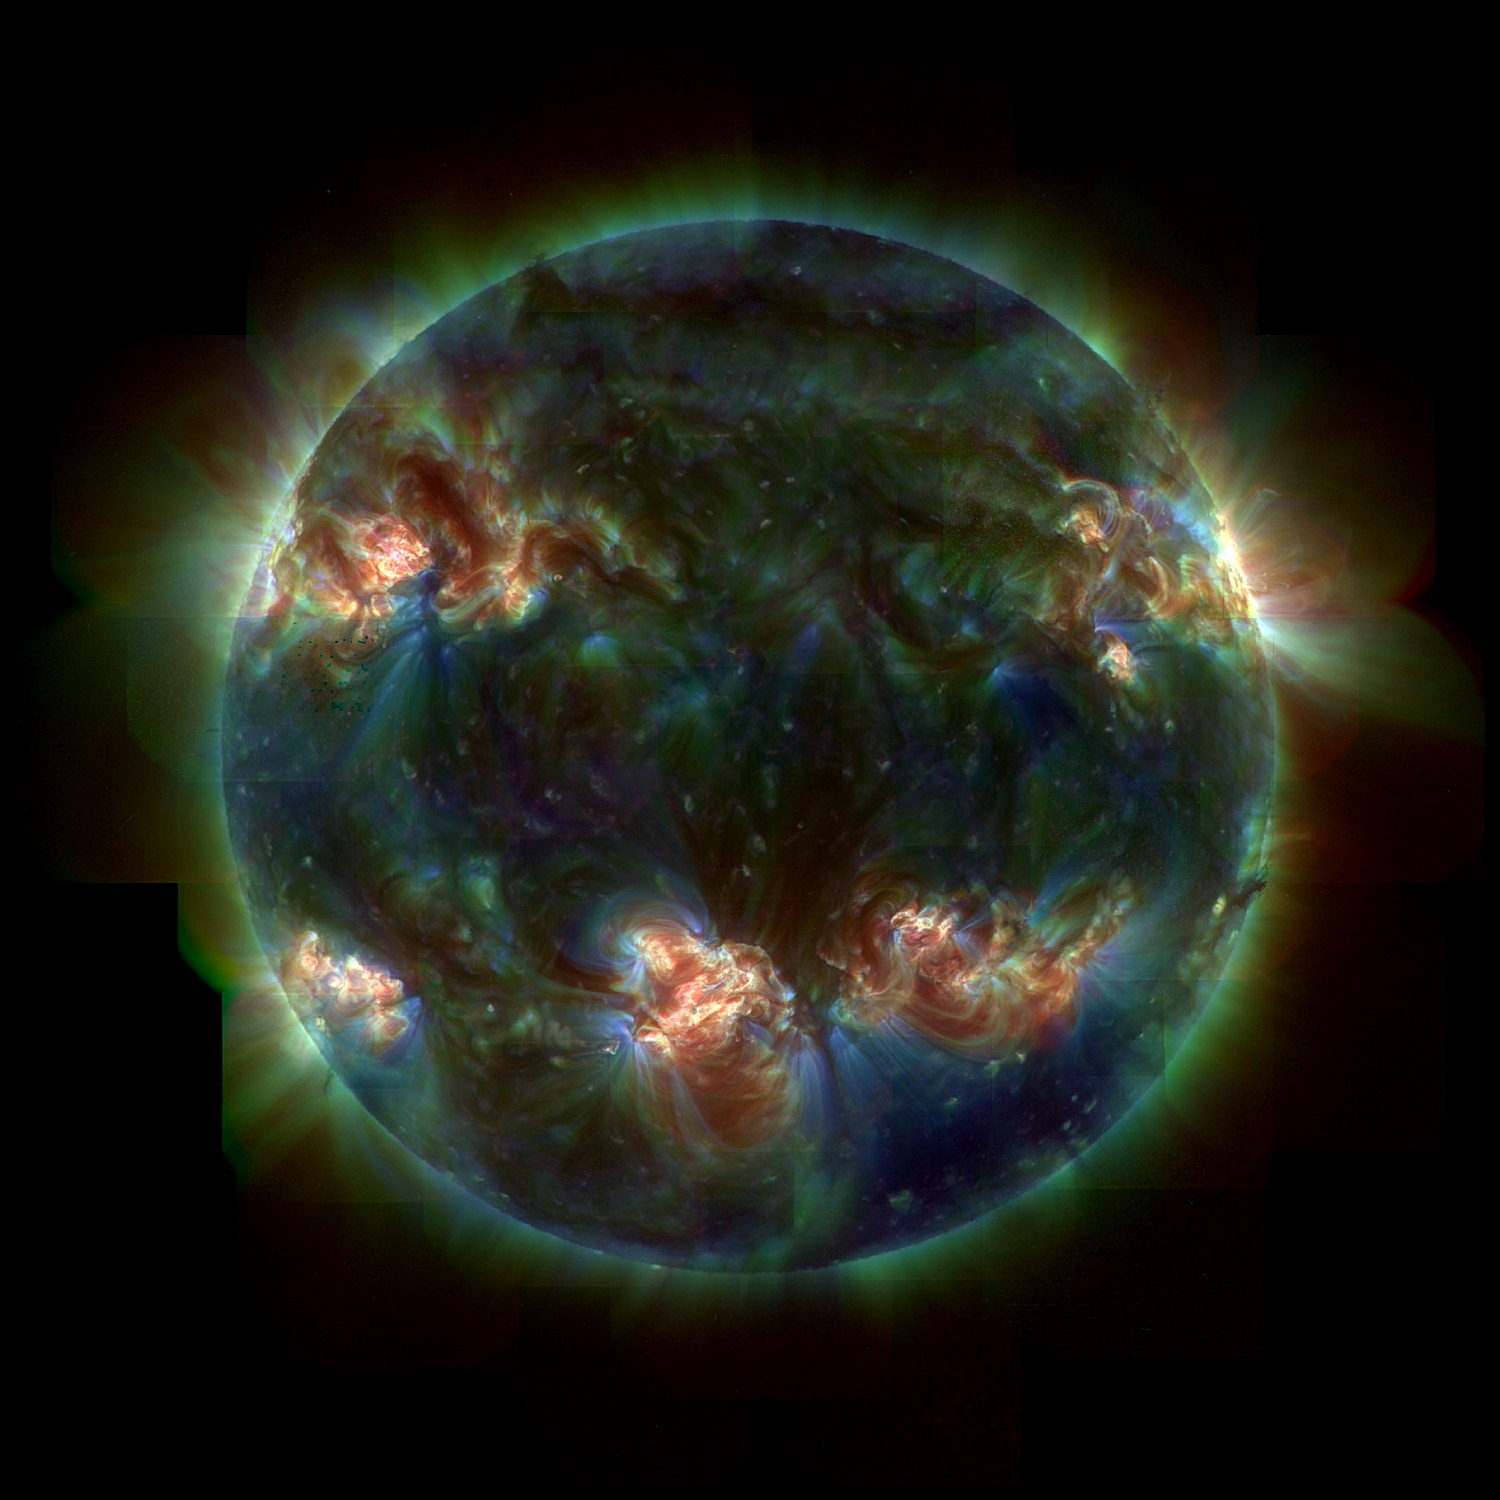 ultraviolet light astronomy - photo #13